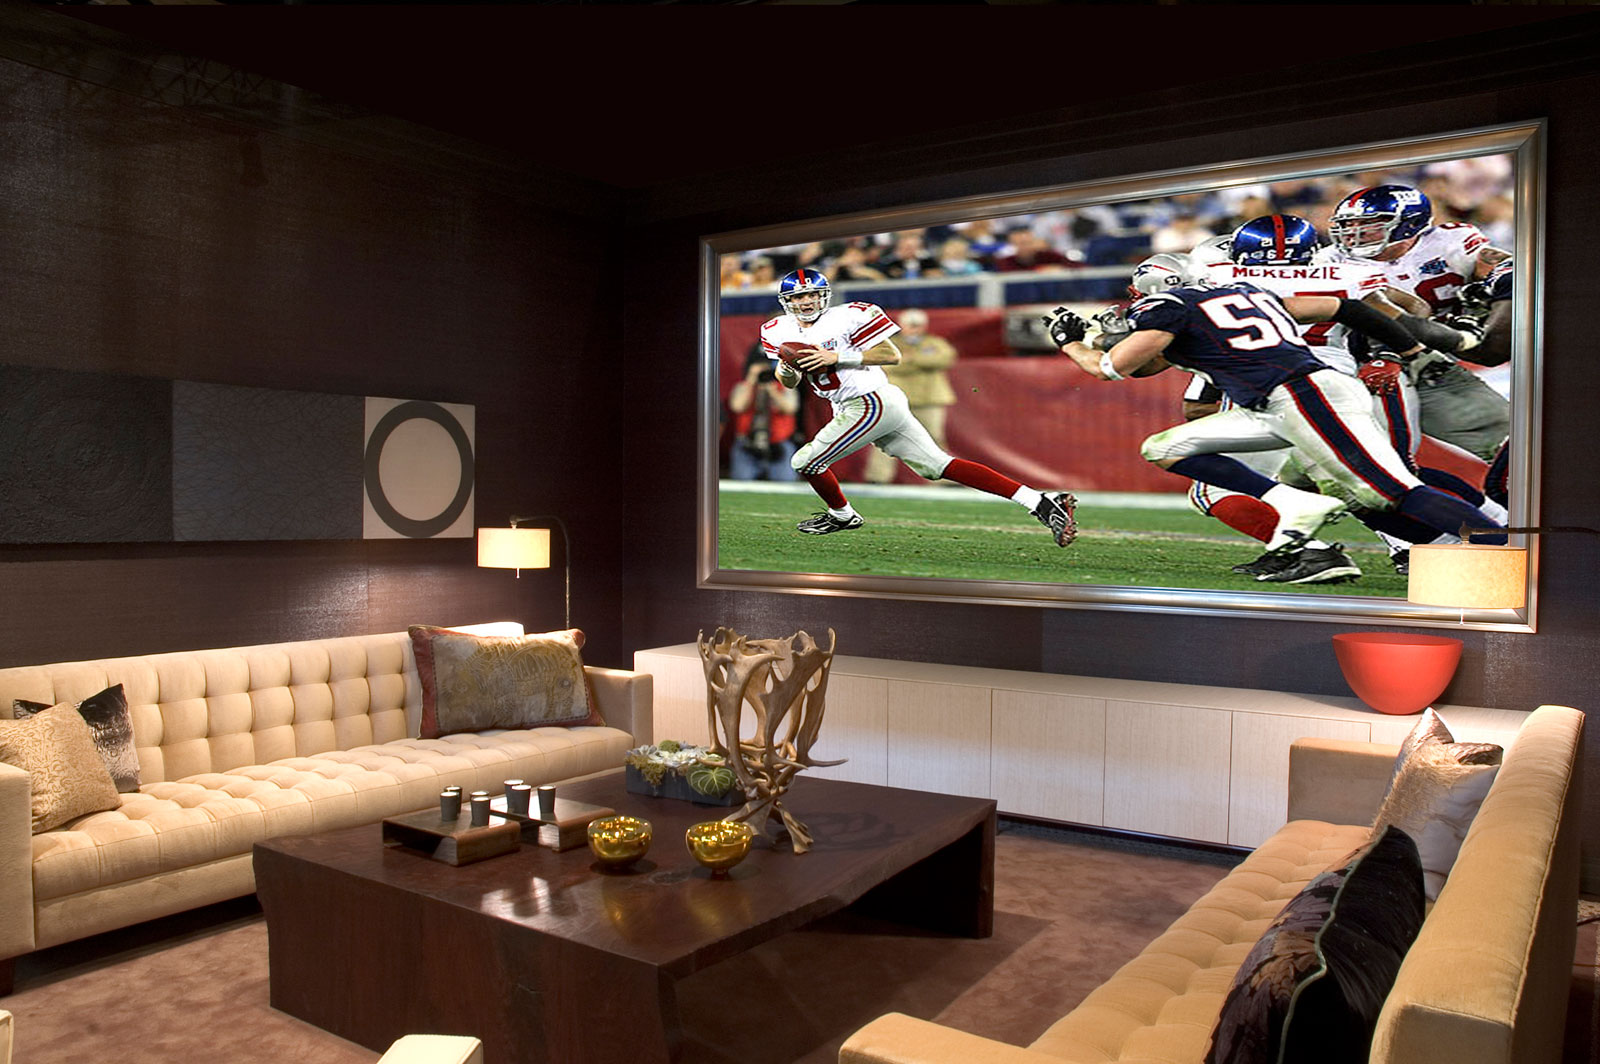 Family Room Design Ideas To Decorate A Living Theater On Budget